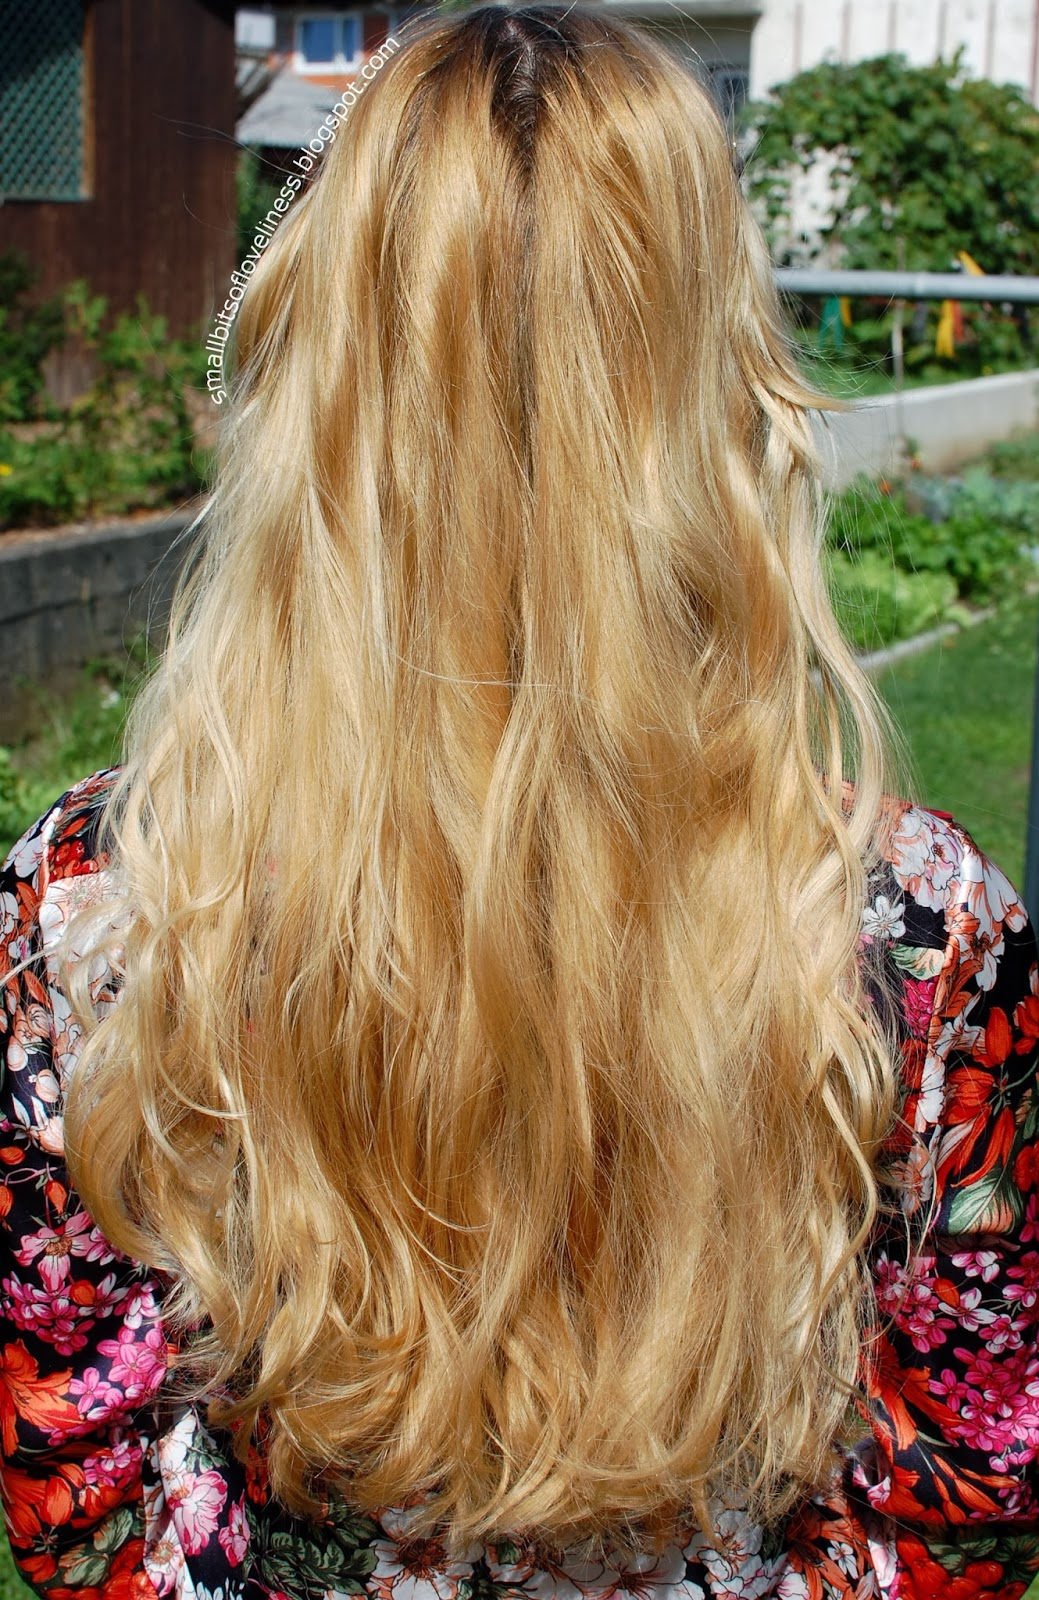 Heatless waves using scrunchies